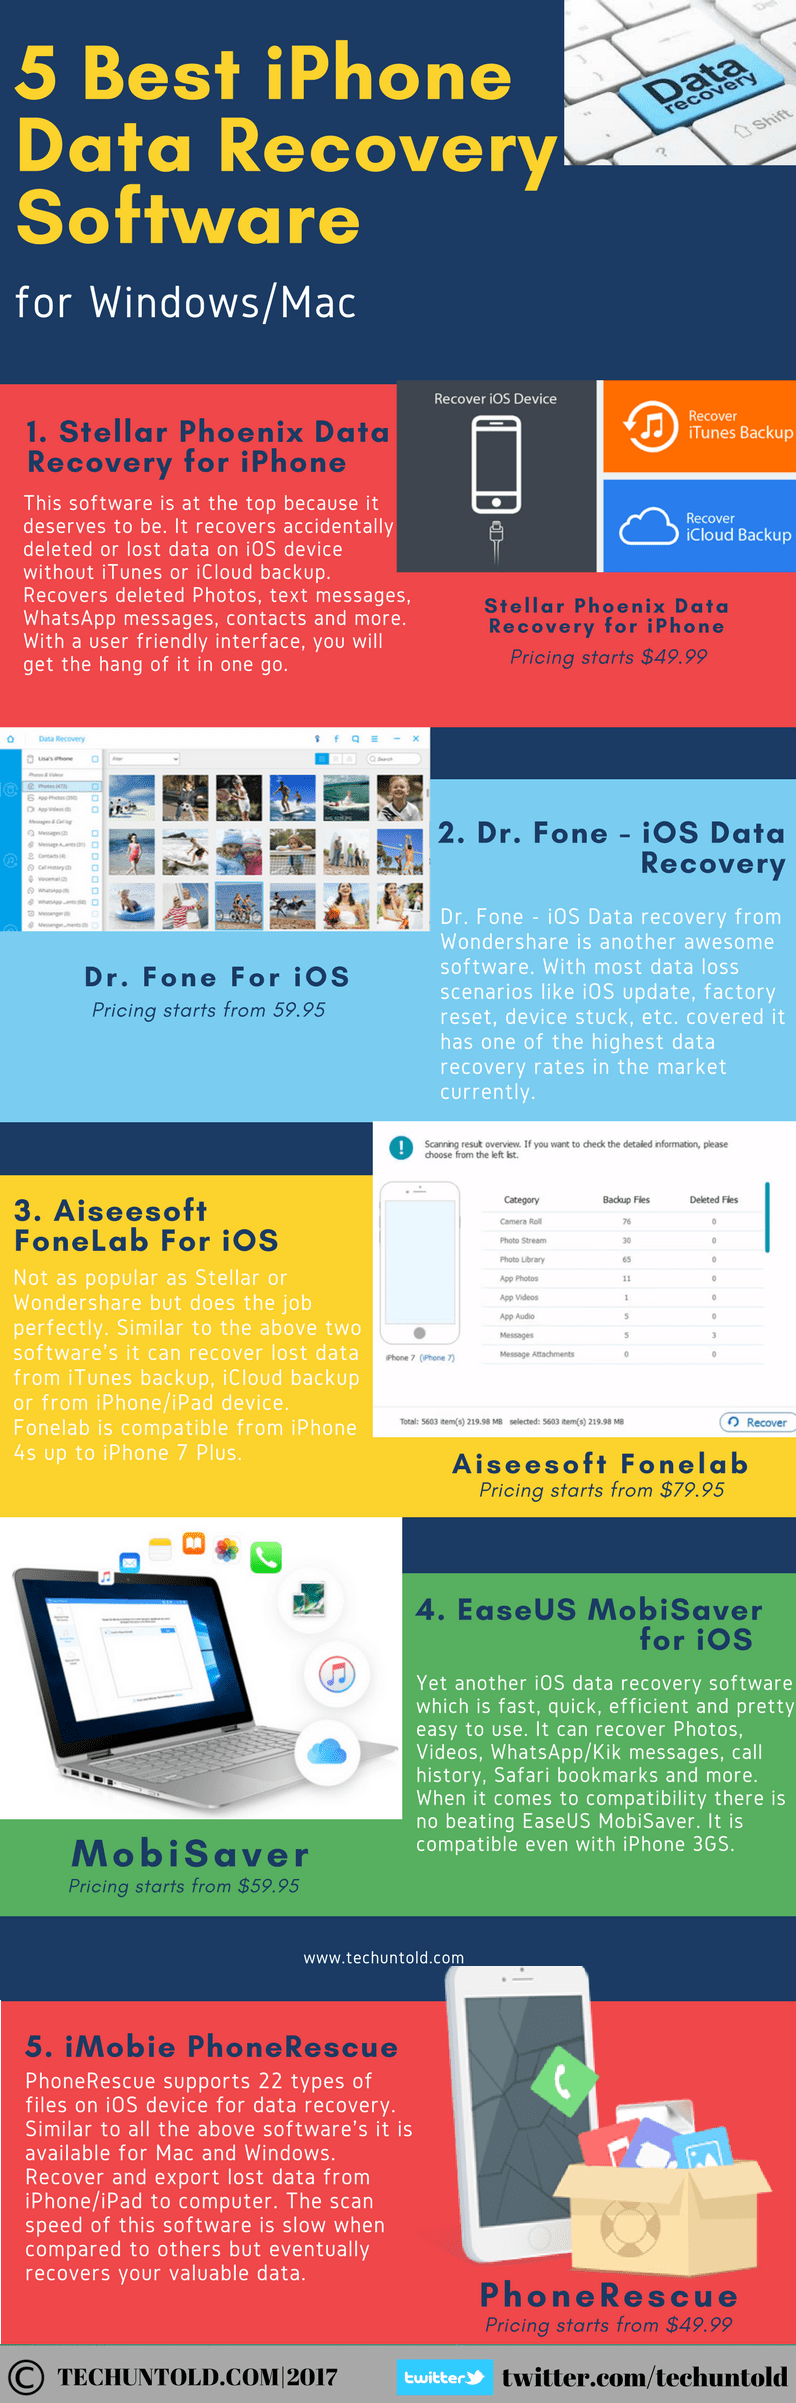 6 Best iPhone Data Recovery Software [Infographic] | TechUntold